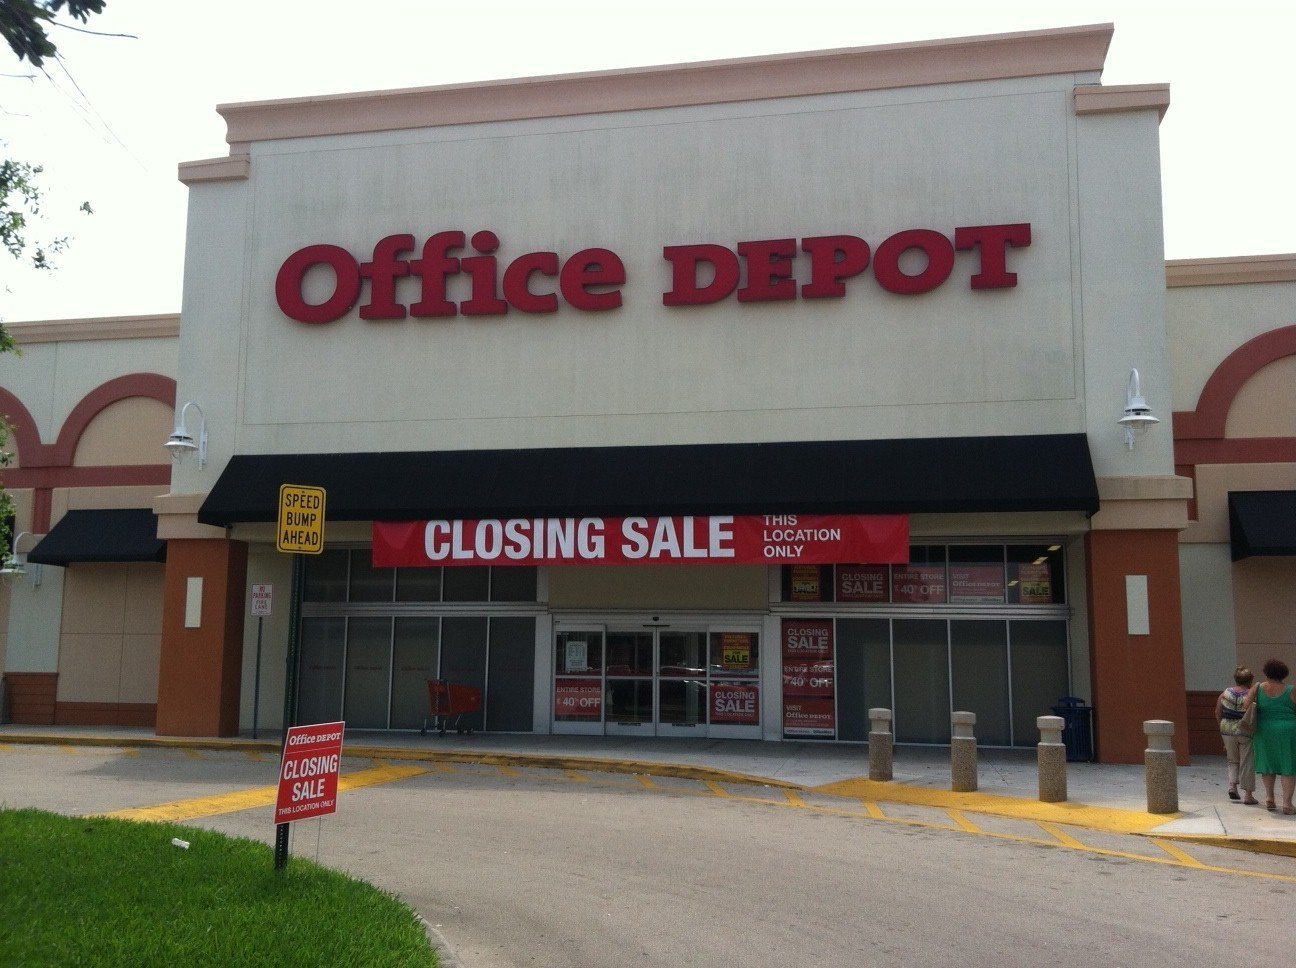 Office Depot #2821   PANAMA CITY BEACH, FL 32407Office Depot #3270   ST  PETERSBURG, FL 33713